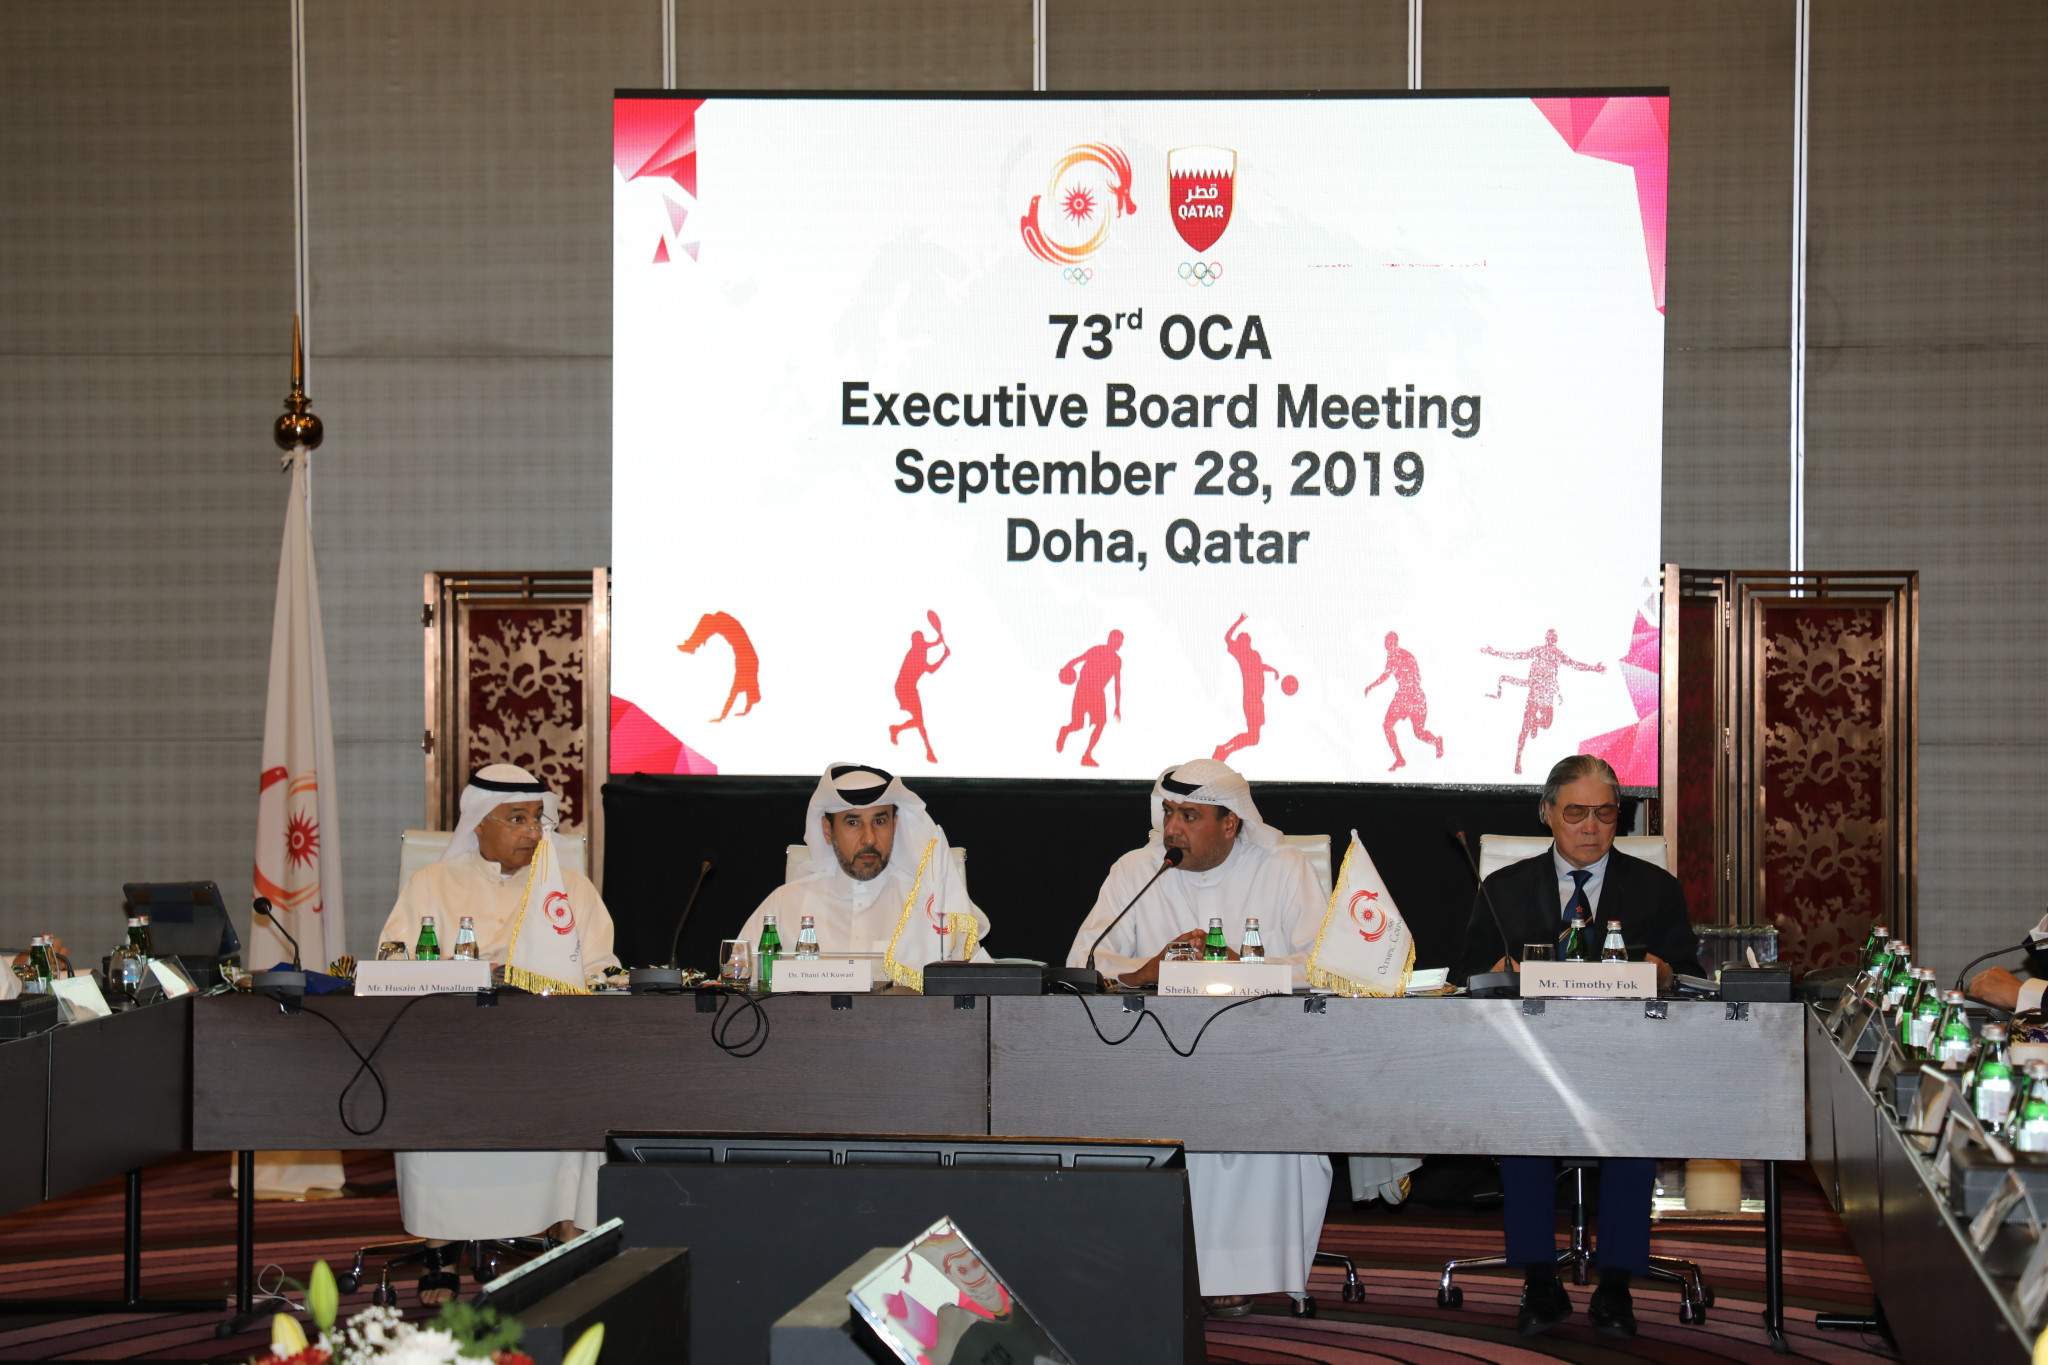 Tashkent were awarded the 2025 Asian Youth Games during the OCA's Executive Board meeting in Doha ©OCA